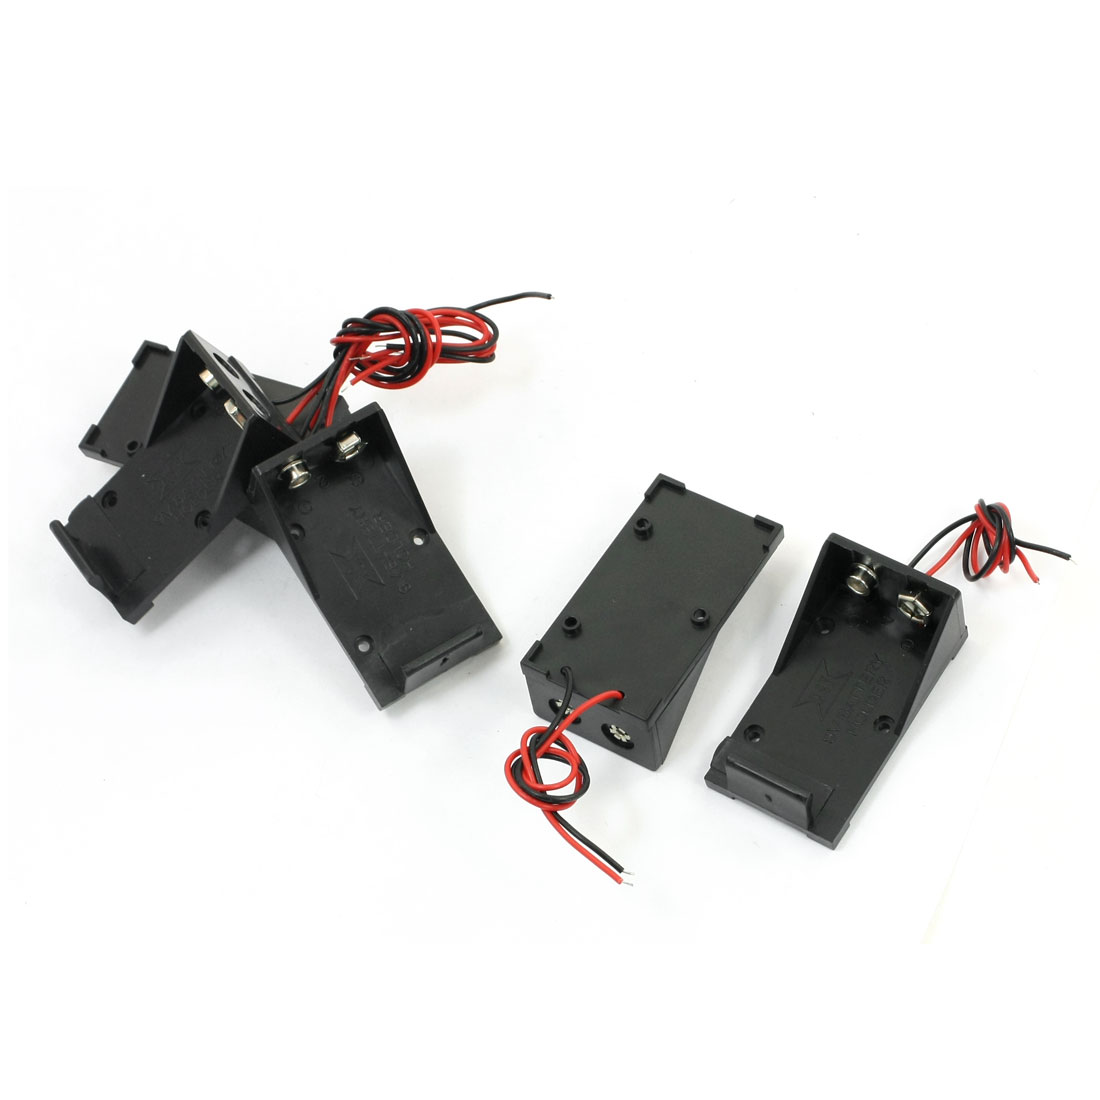 5Pcs Double Wire Open Frame 9V Batteries Holders Cases Boxes Containers